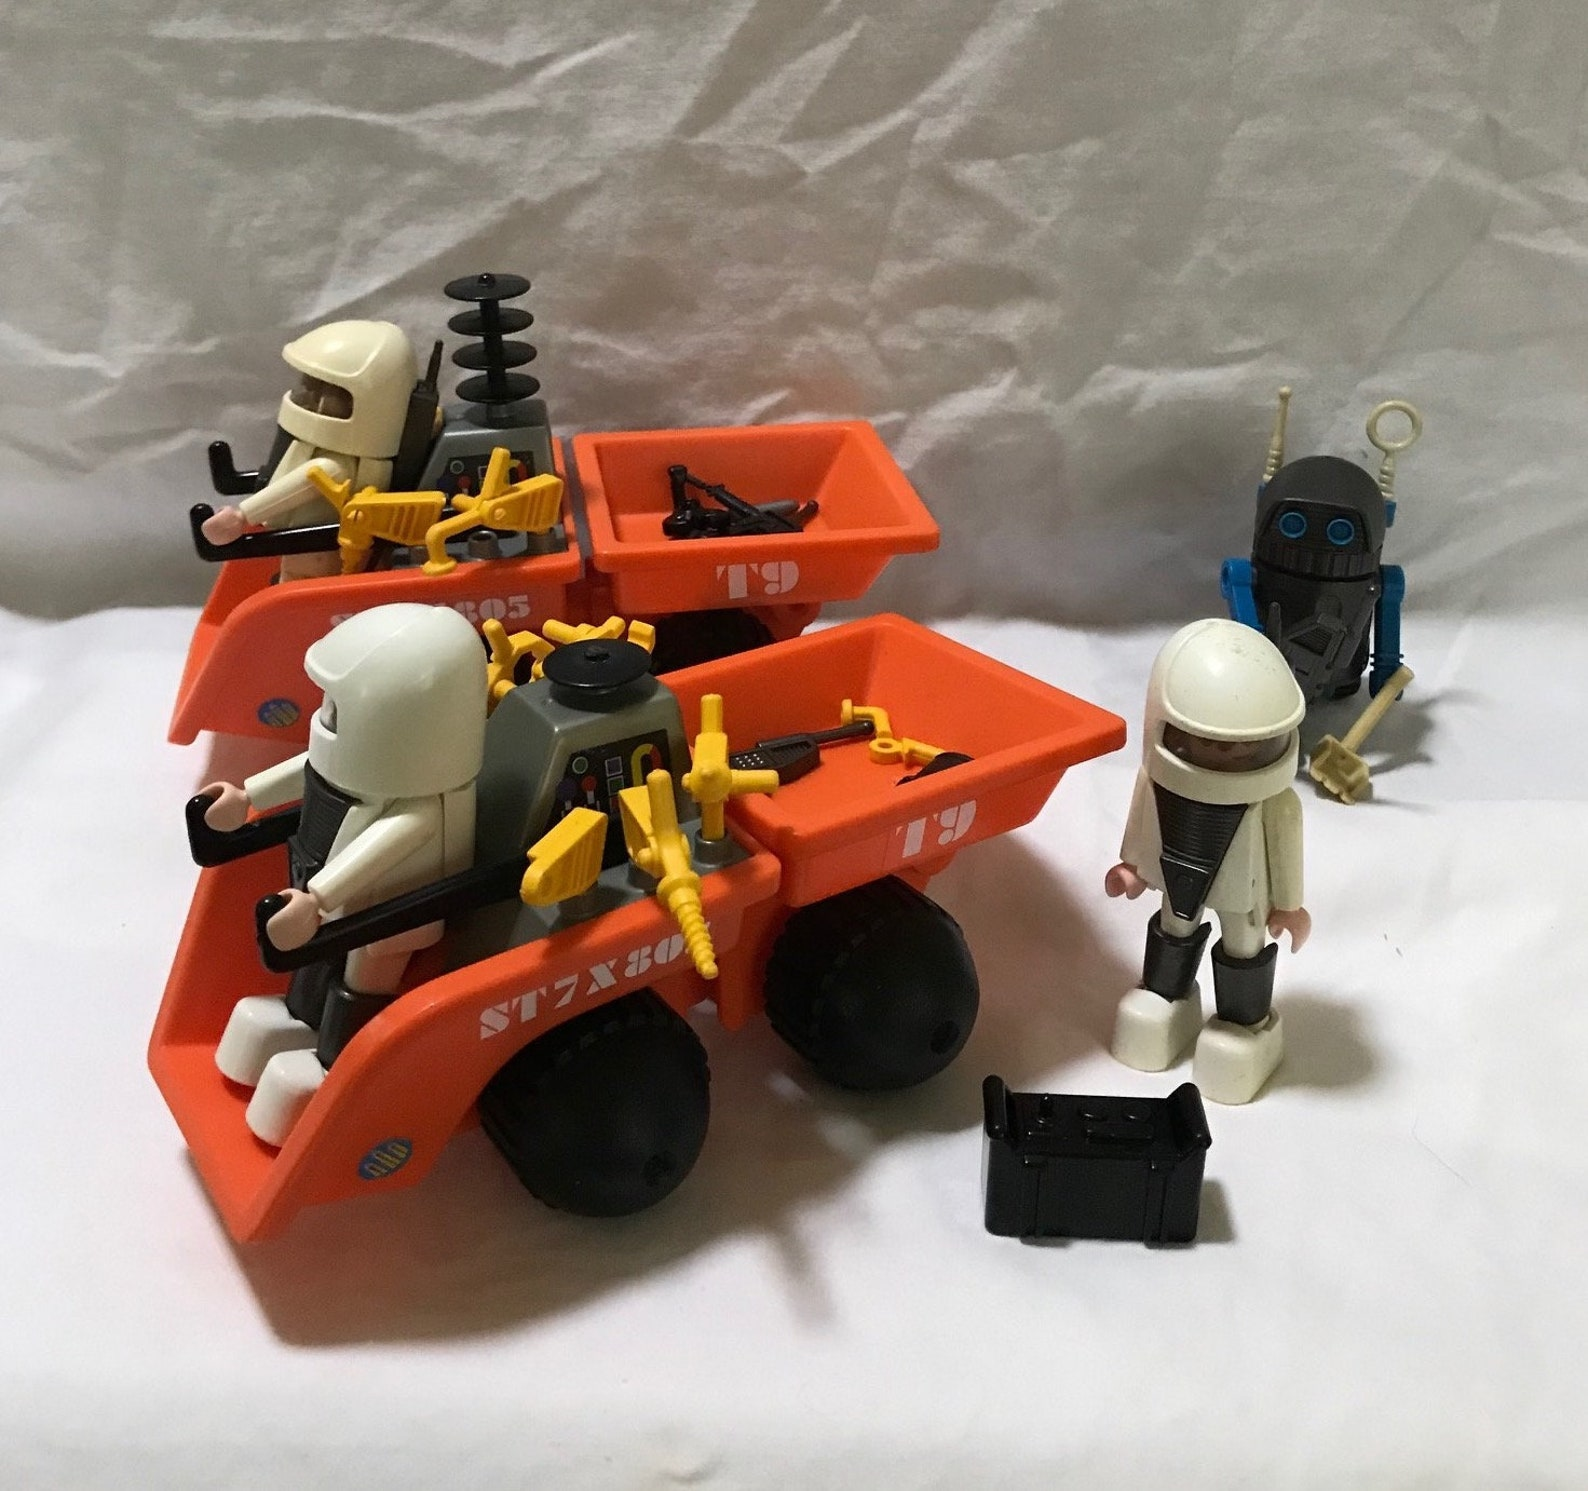 Vintage 1982 Playmobil Moon 2 Orange Vehicles With 3 Spacemen in White With a Robot and Accessories Playmobil Space Set